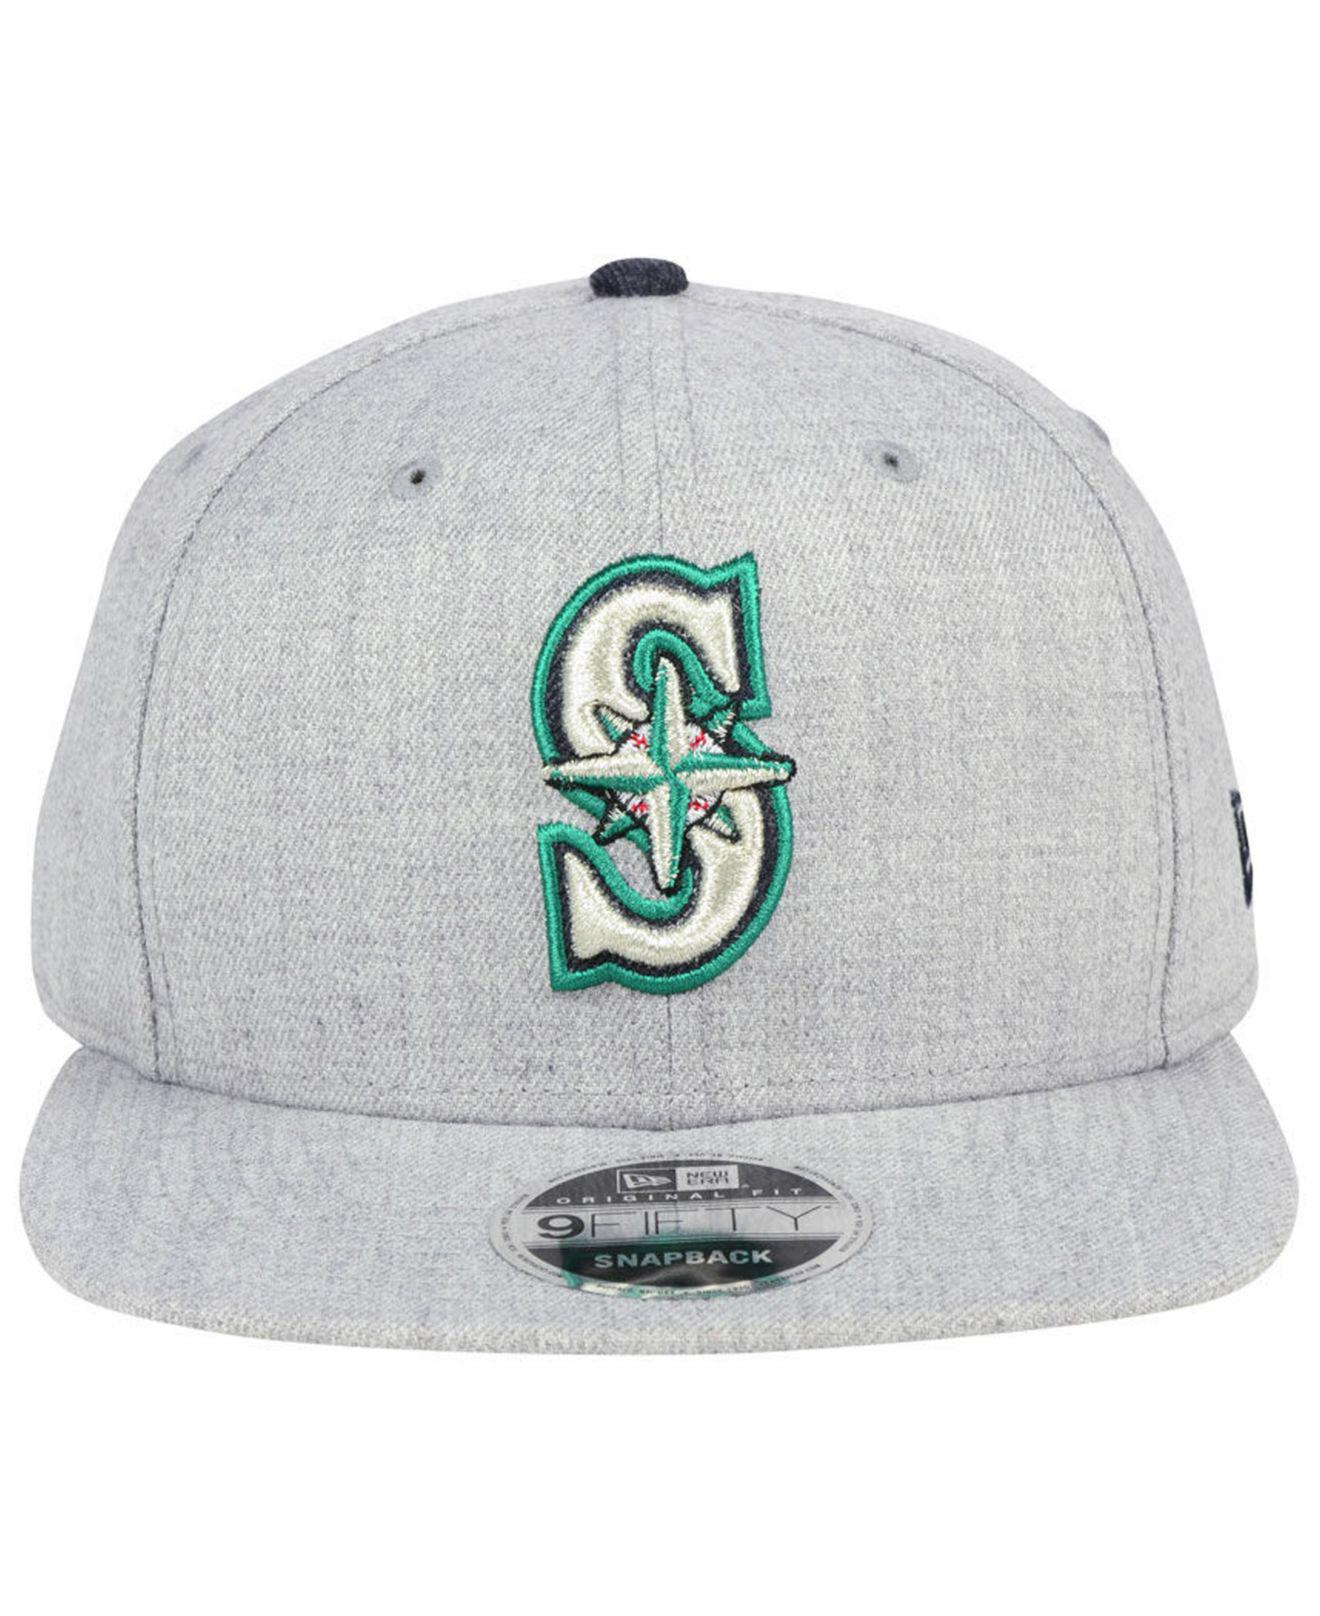 on sale 71138 2db57 shopping lyst ktz seattle mariners heather hype 9fifty snapback cap in gray  for men da146 83511